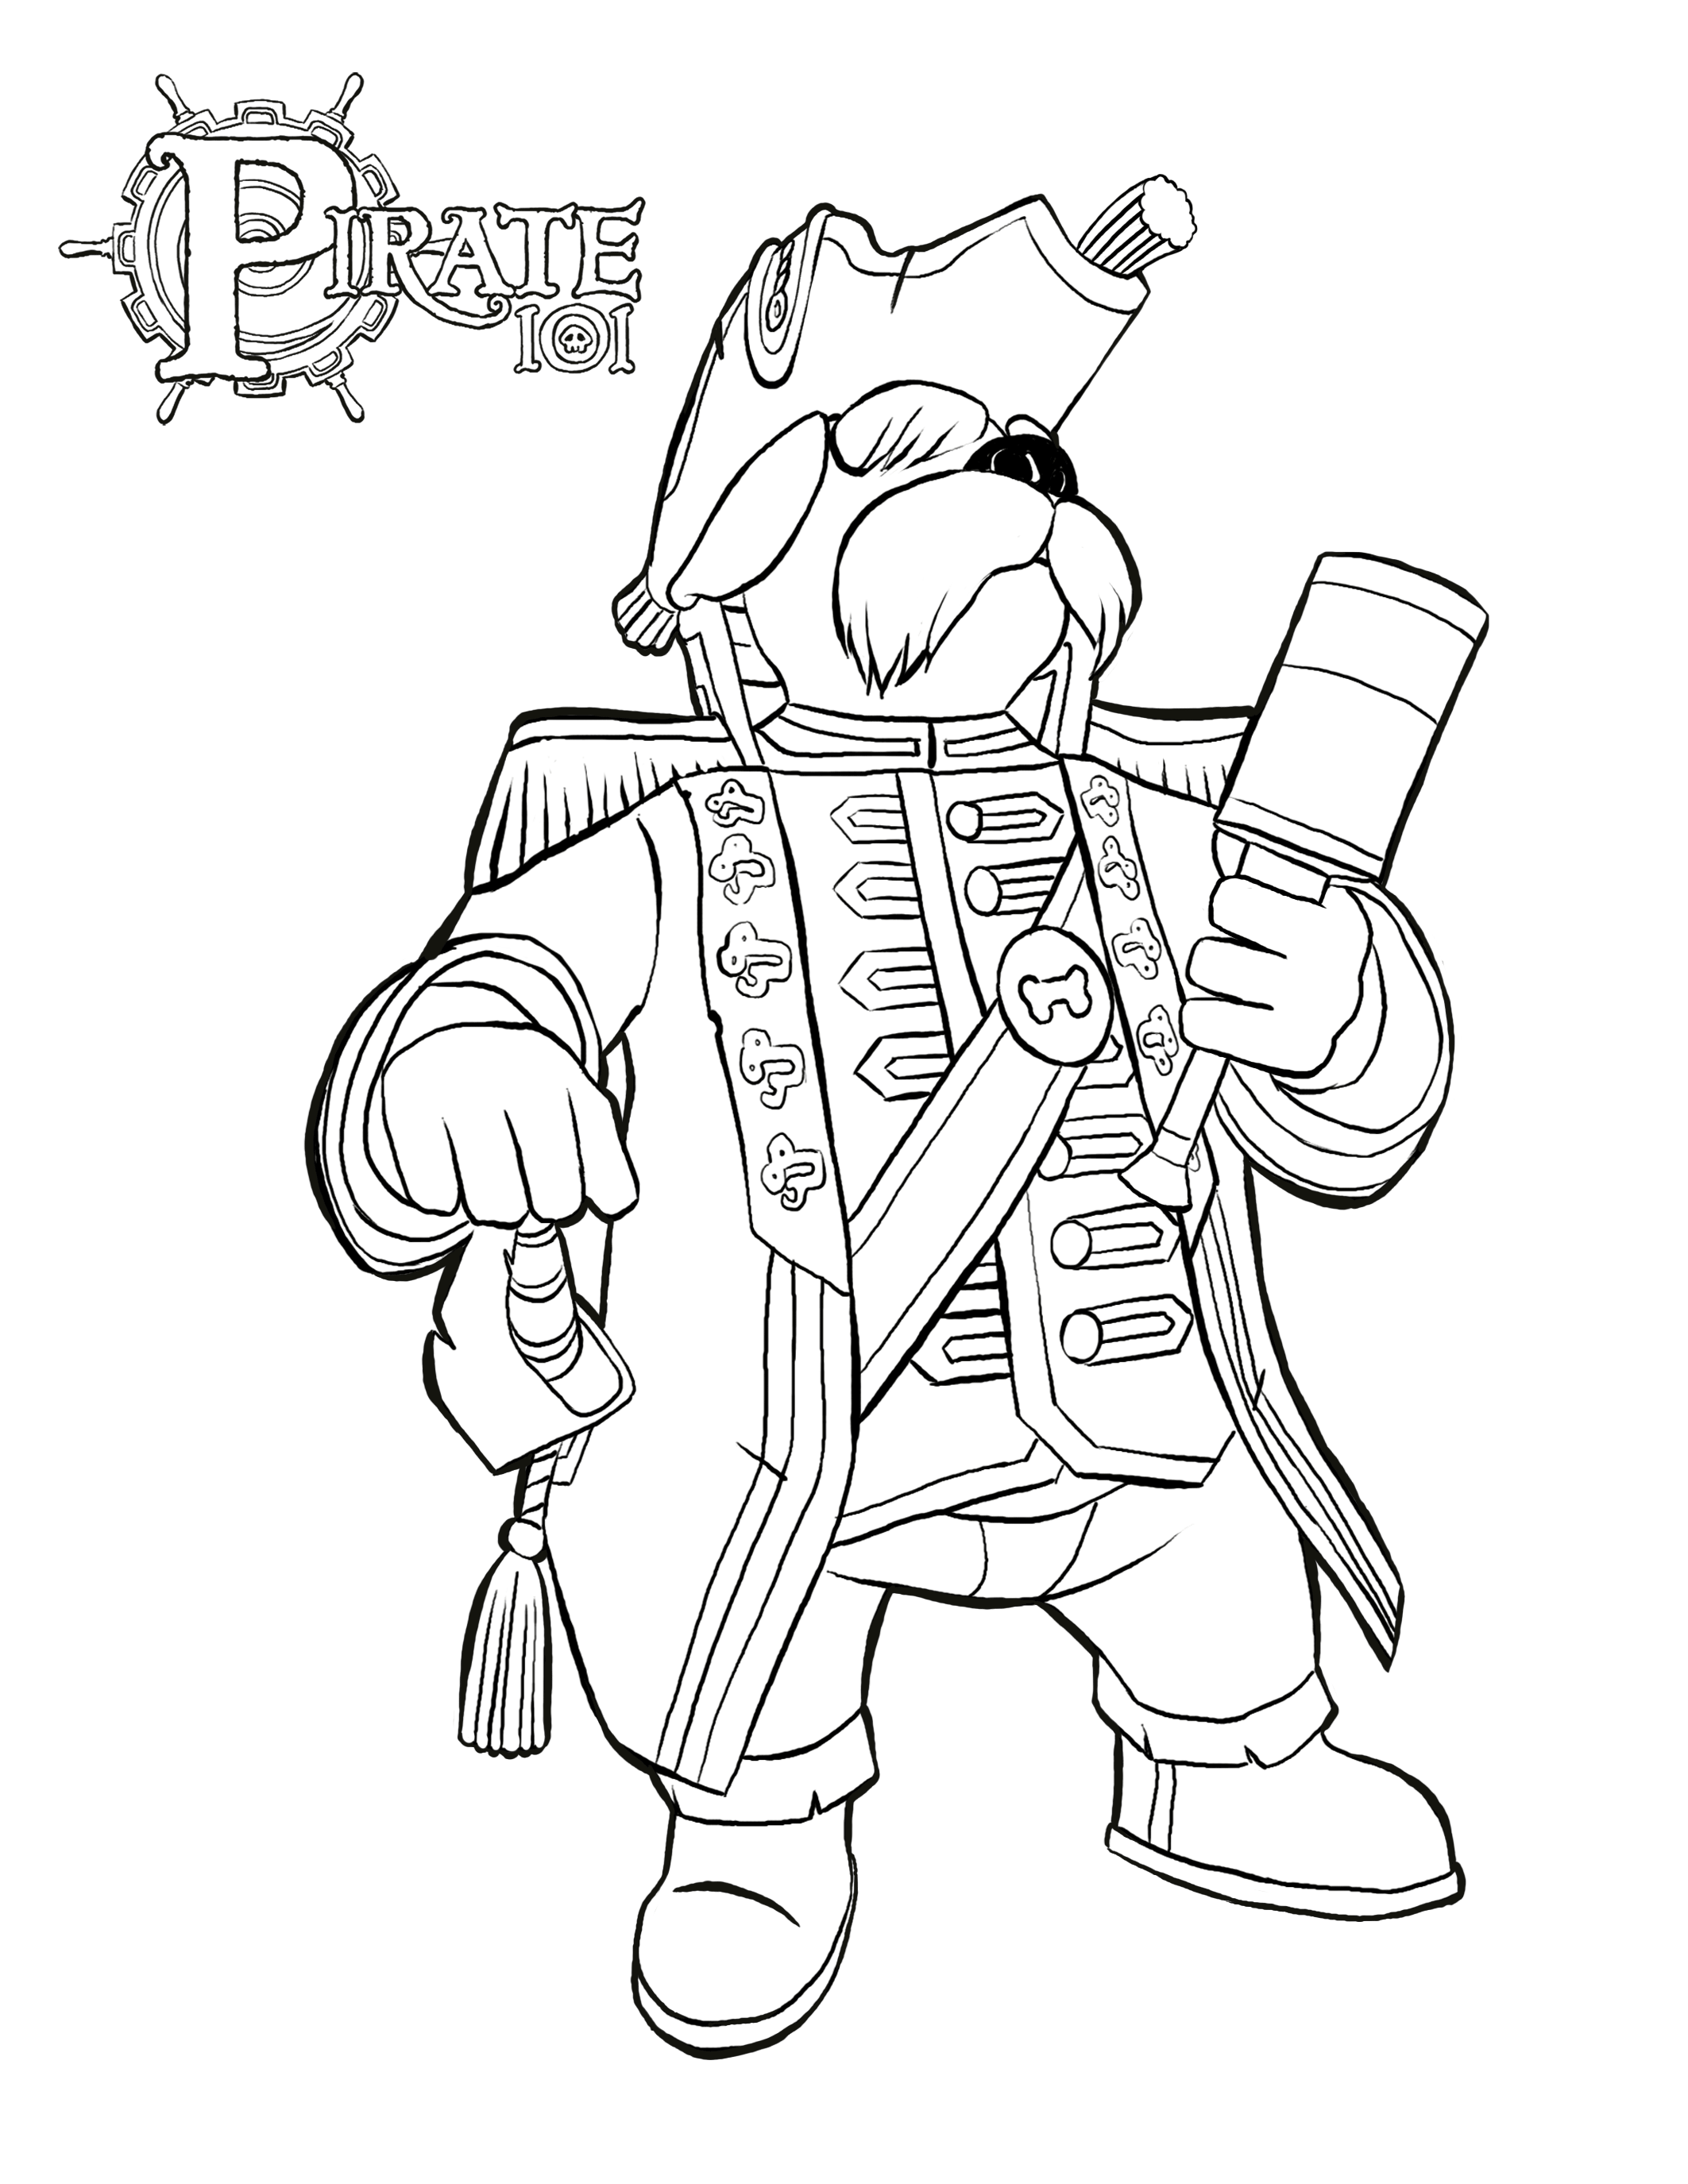 Pirate coloring pages coloring home for Coloring pages pirate